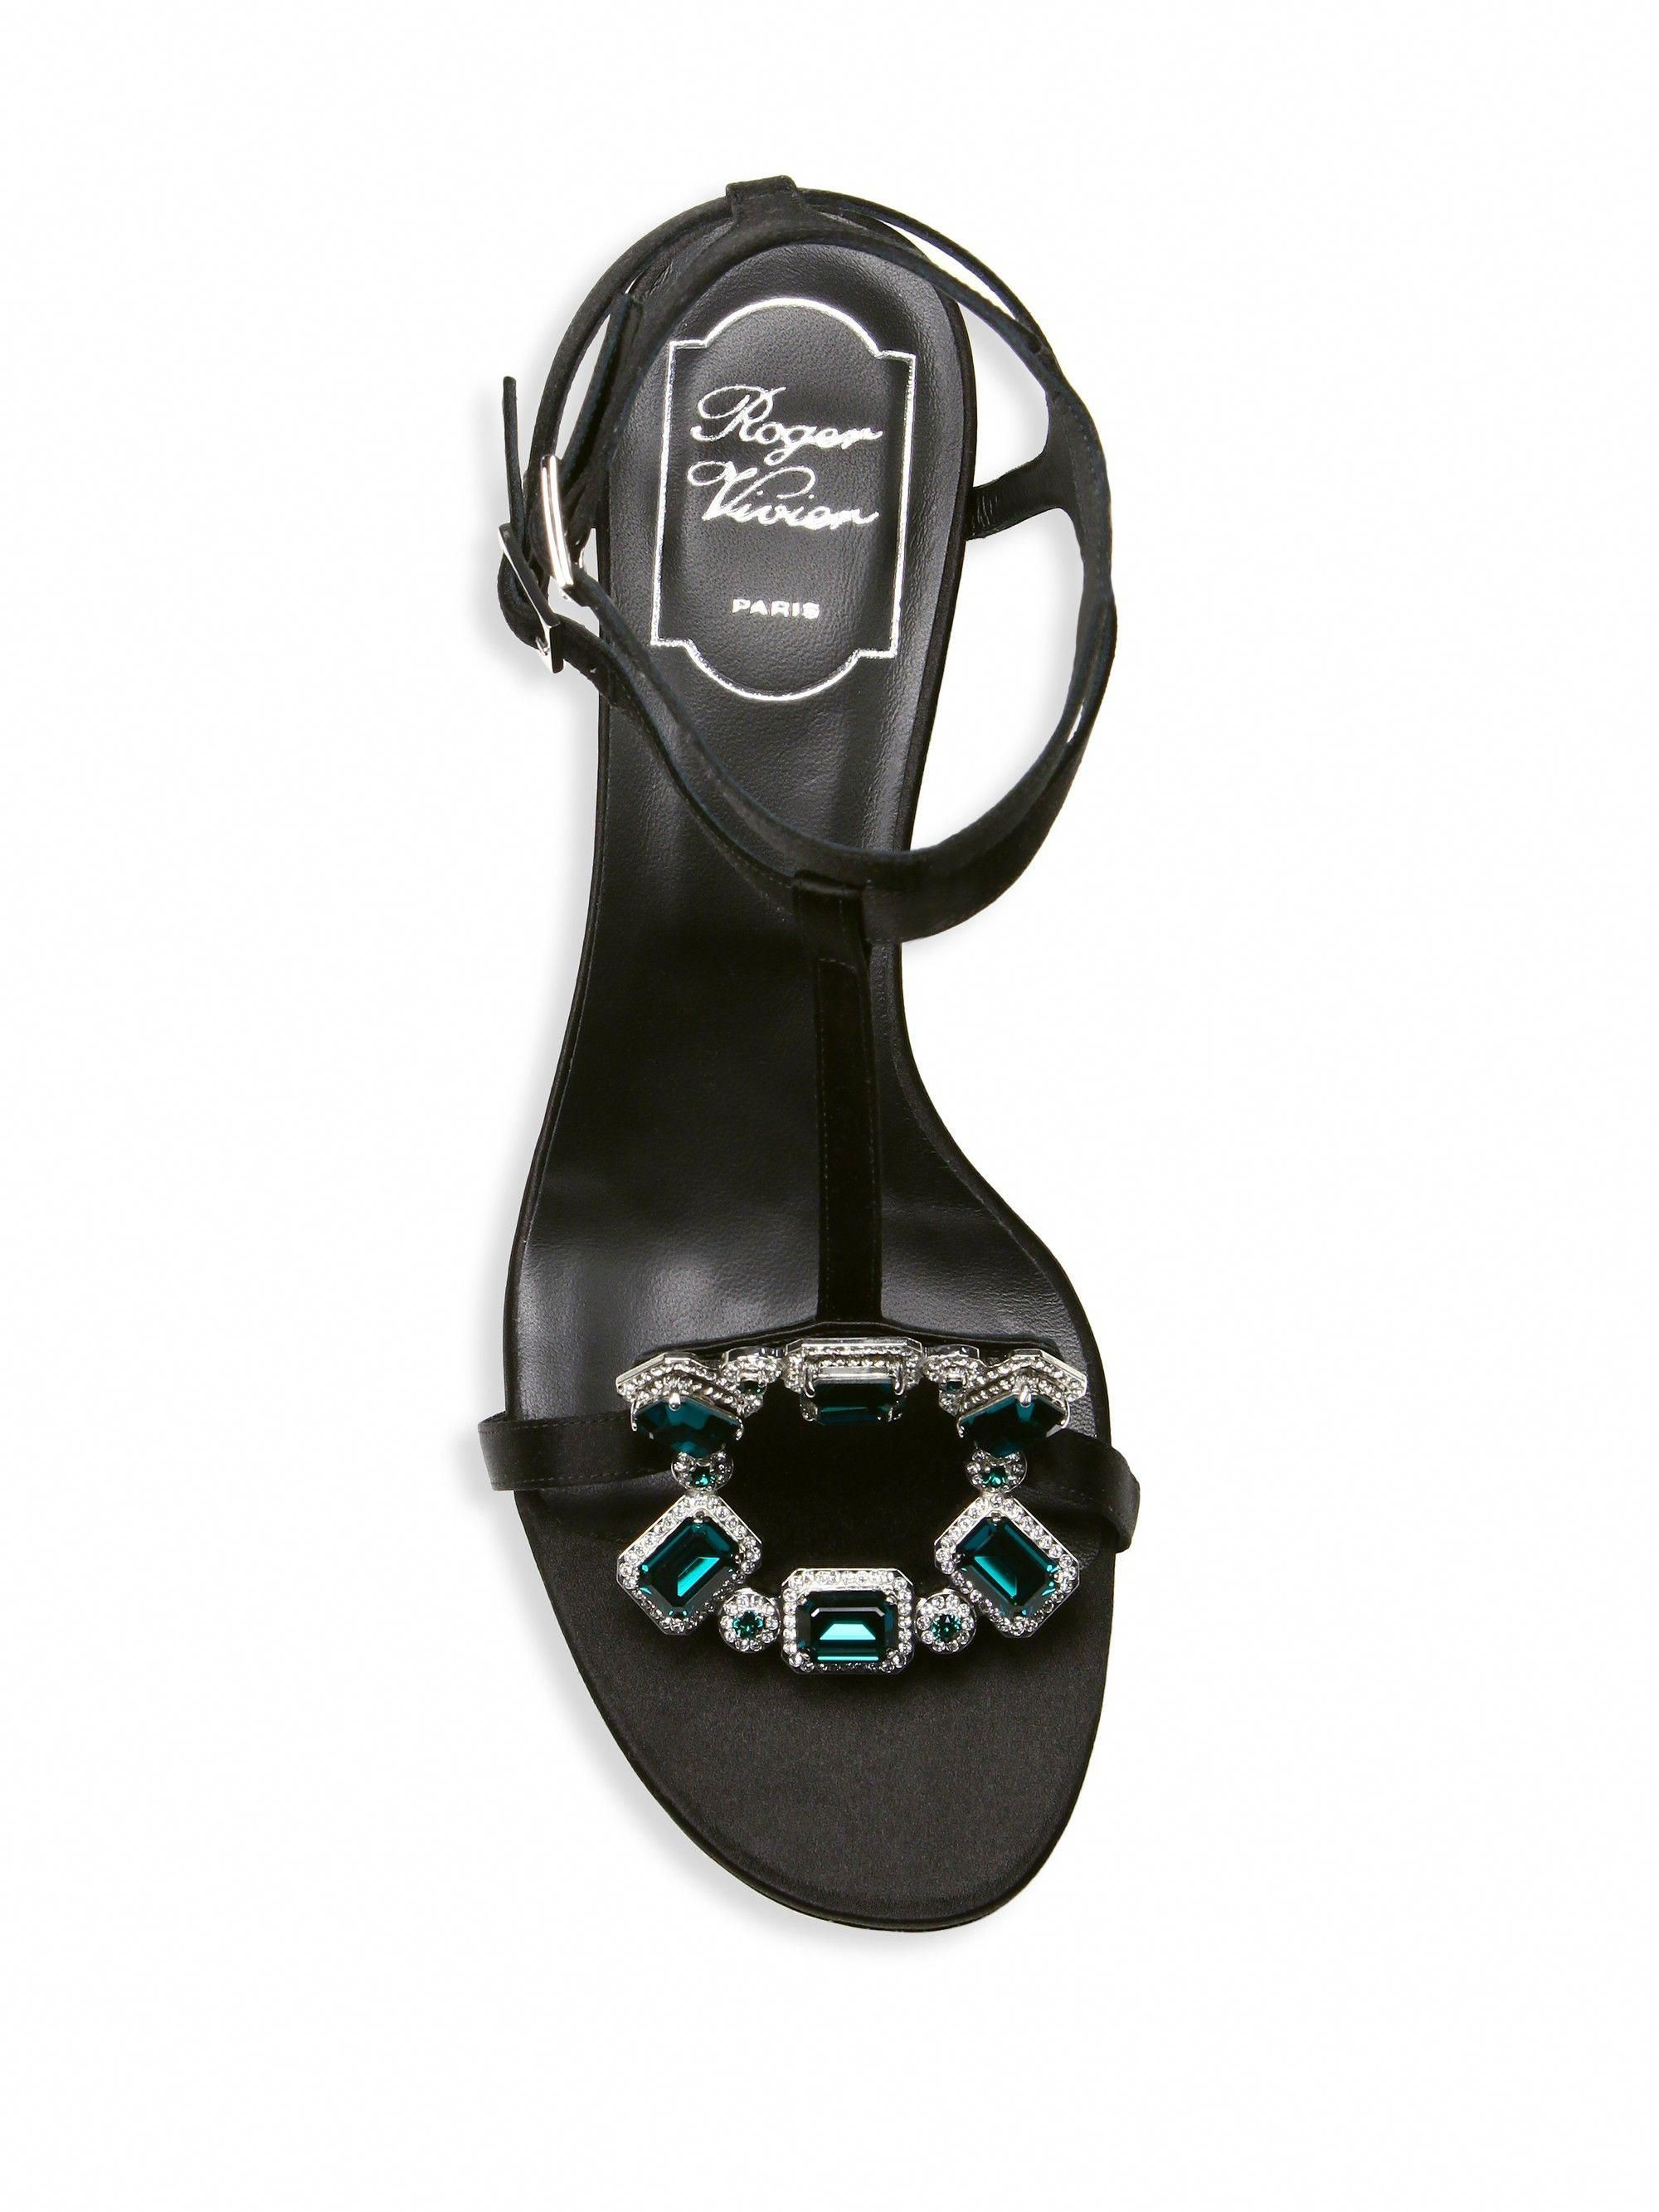 523f388c666869 Roger Vivier Premium Crown Jewels Sandals - Black 37.5 (7.5)  RogerVivier